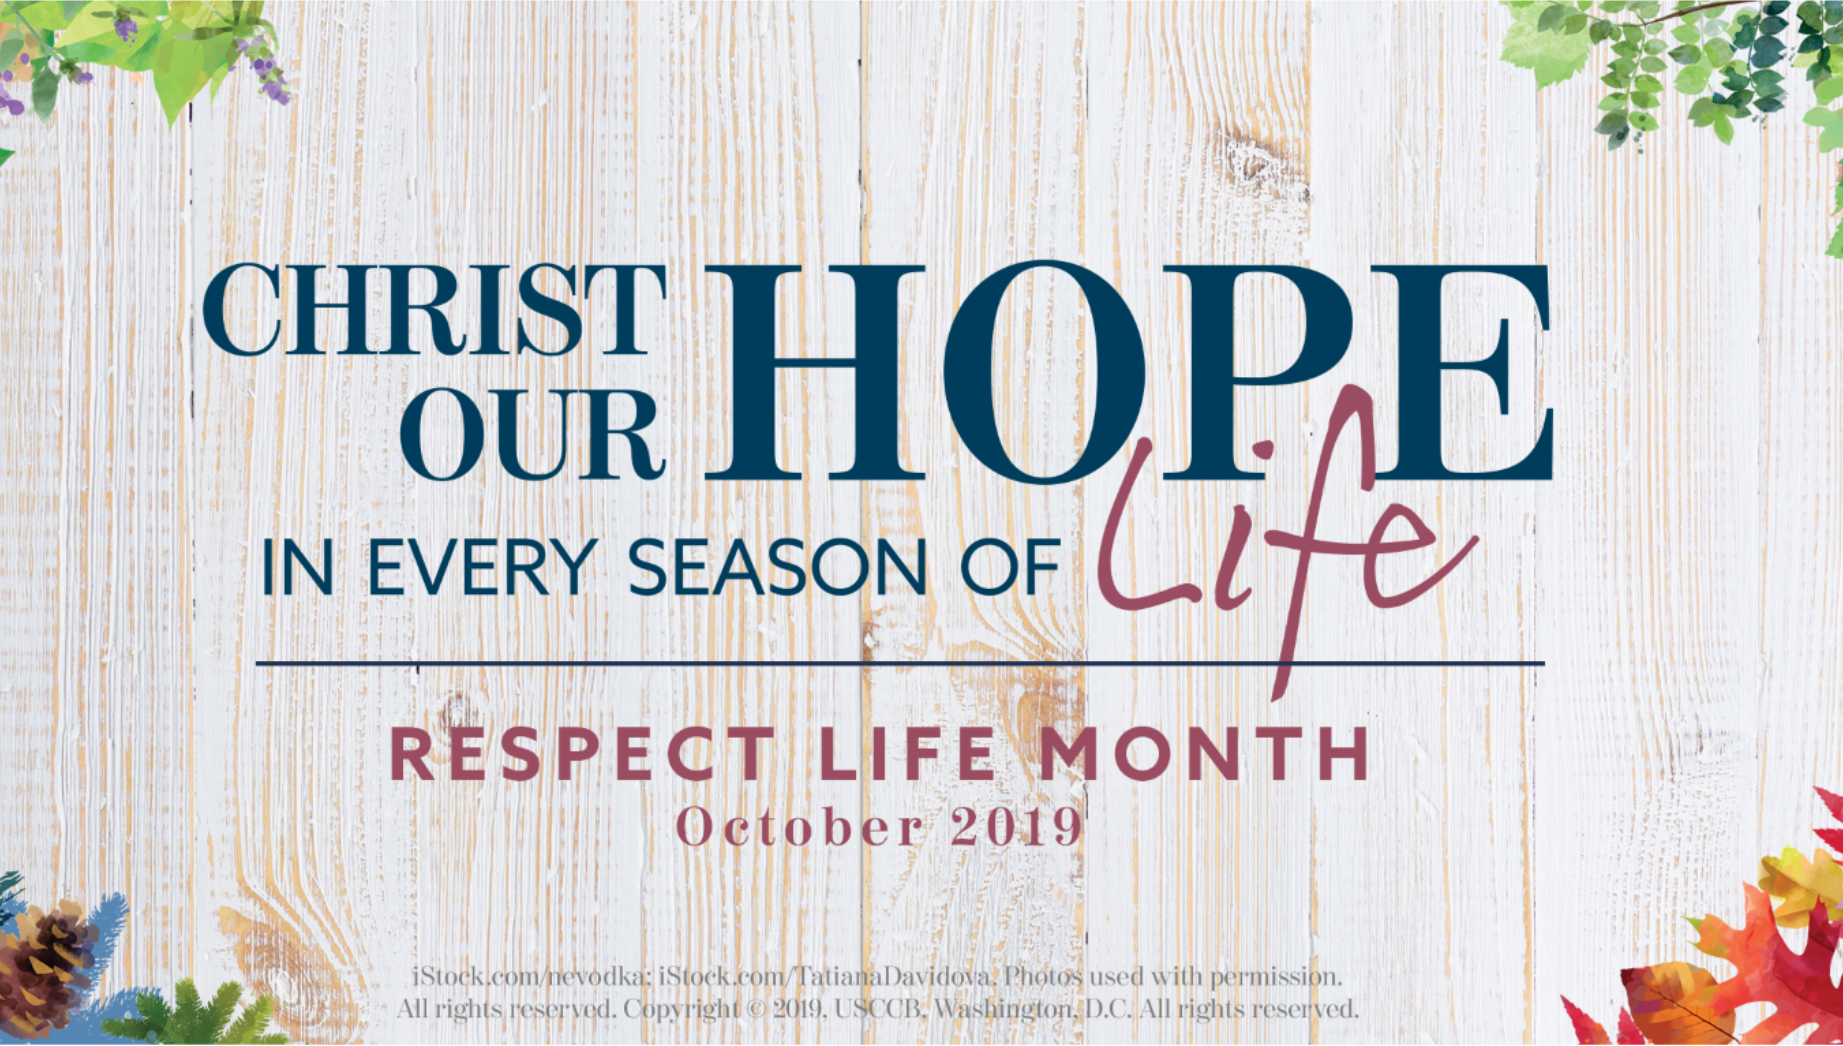 Web_Ad_-_repect_life_month_2019.png